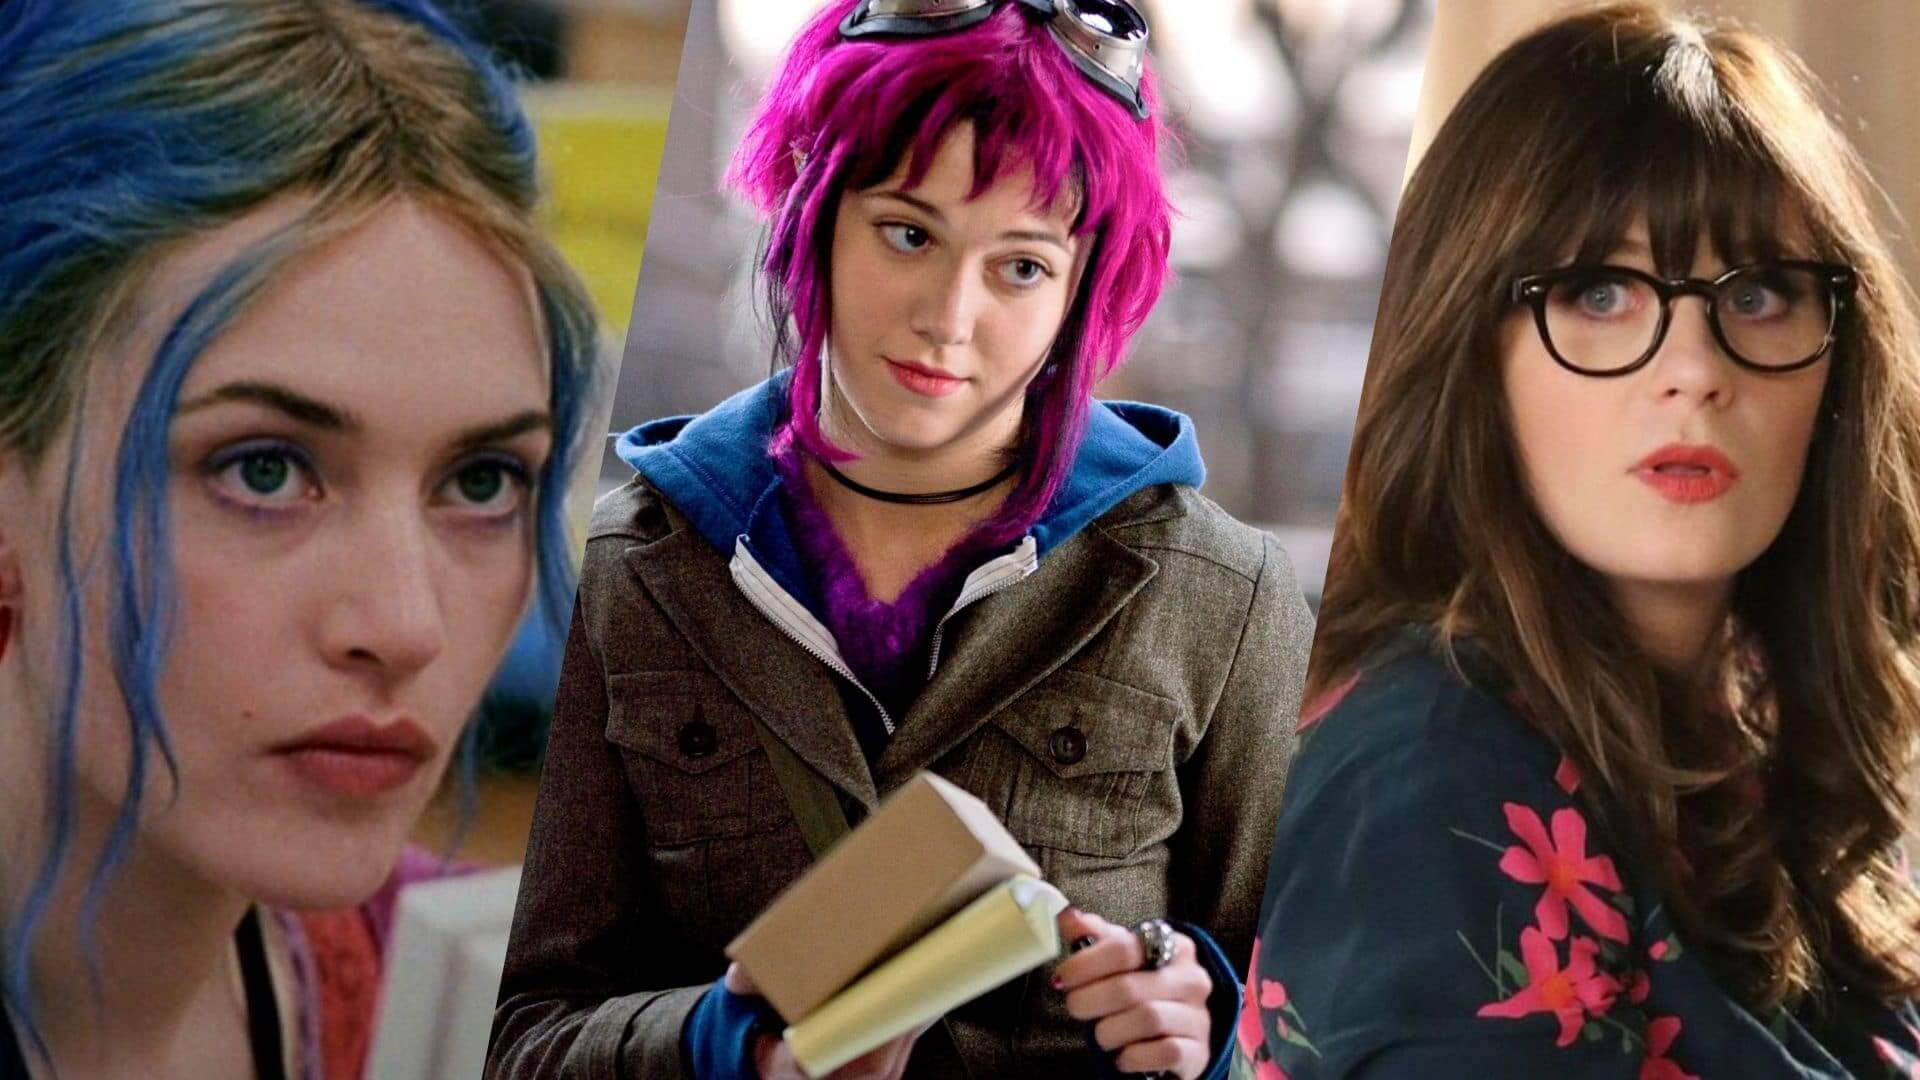 Manic Pixie Dream Girl — A Eulogy for a Character Trope